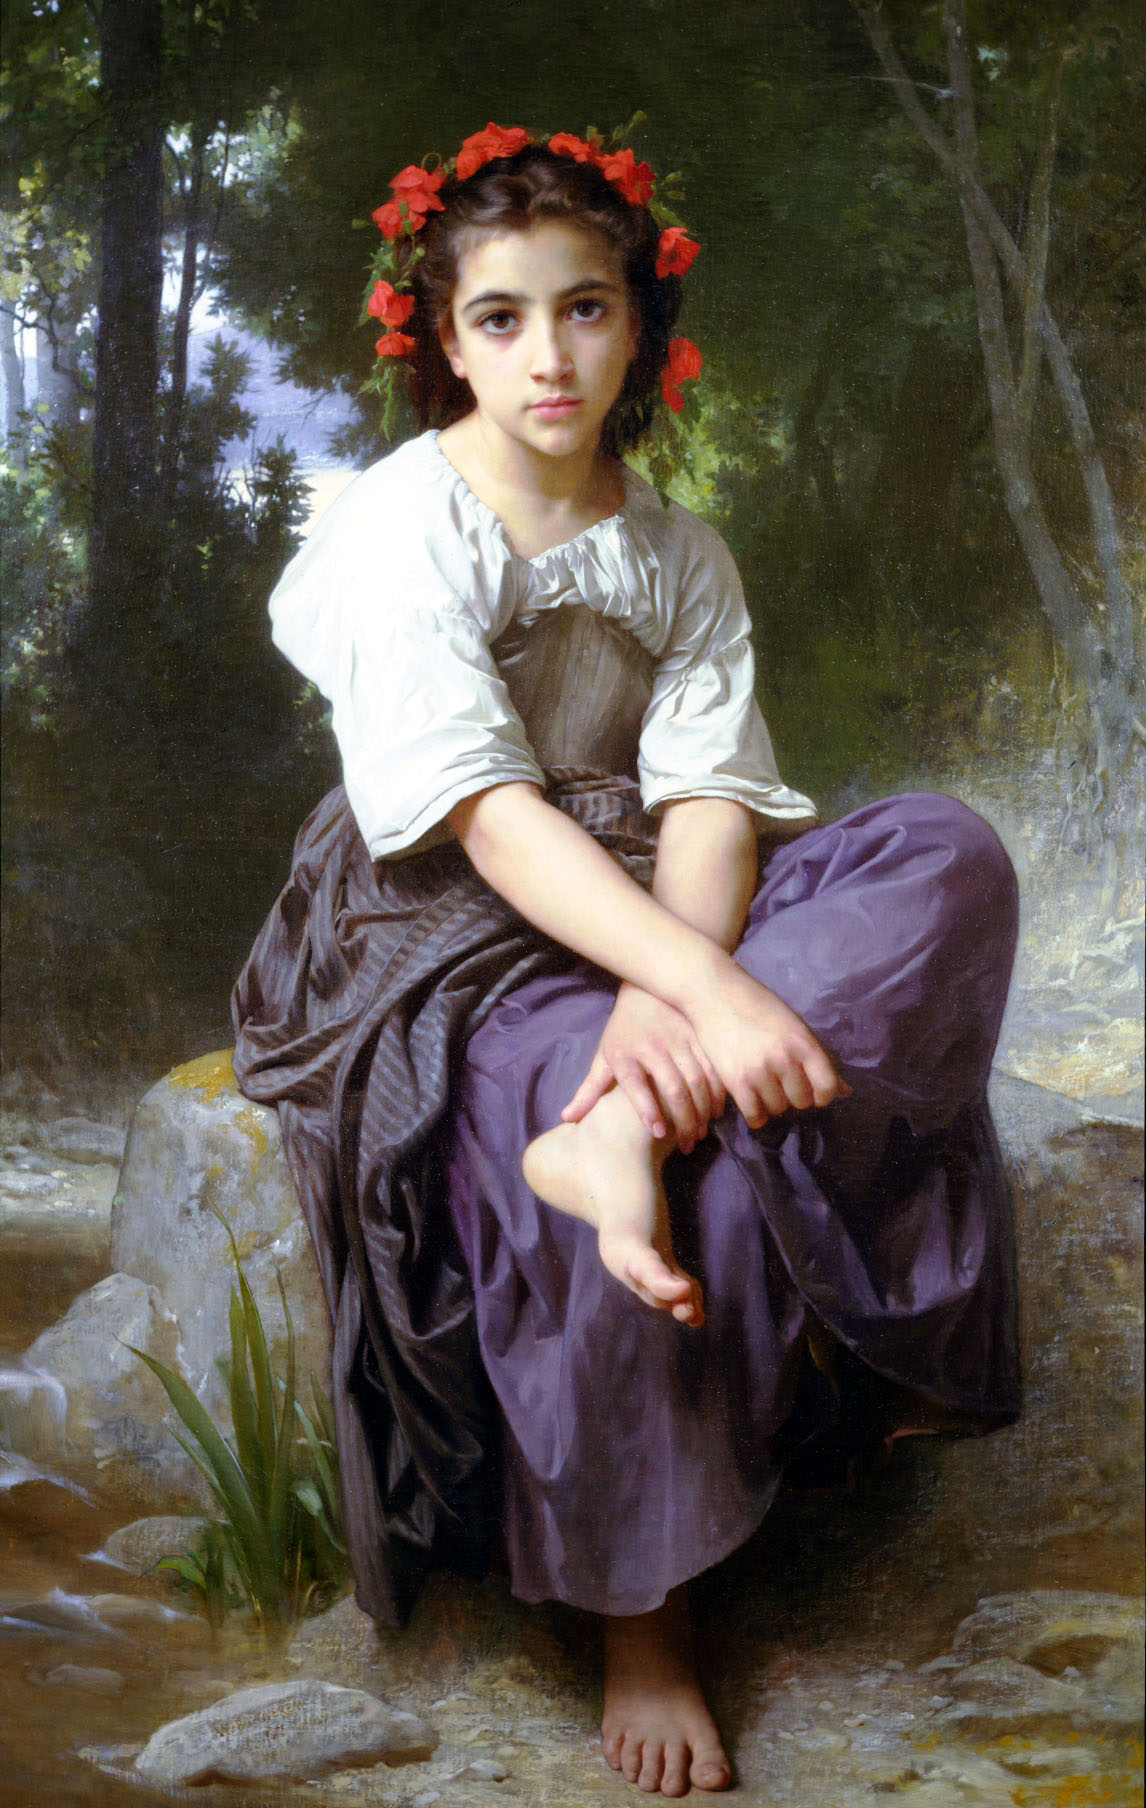 Huge picWilliam-Adolphe_Bouguereau_(1825-1905)_-_At_the_Edge_of_the_Brook_(1875)